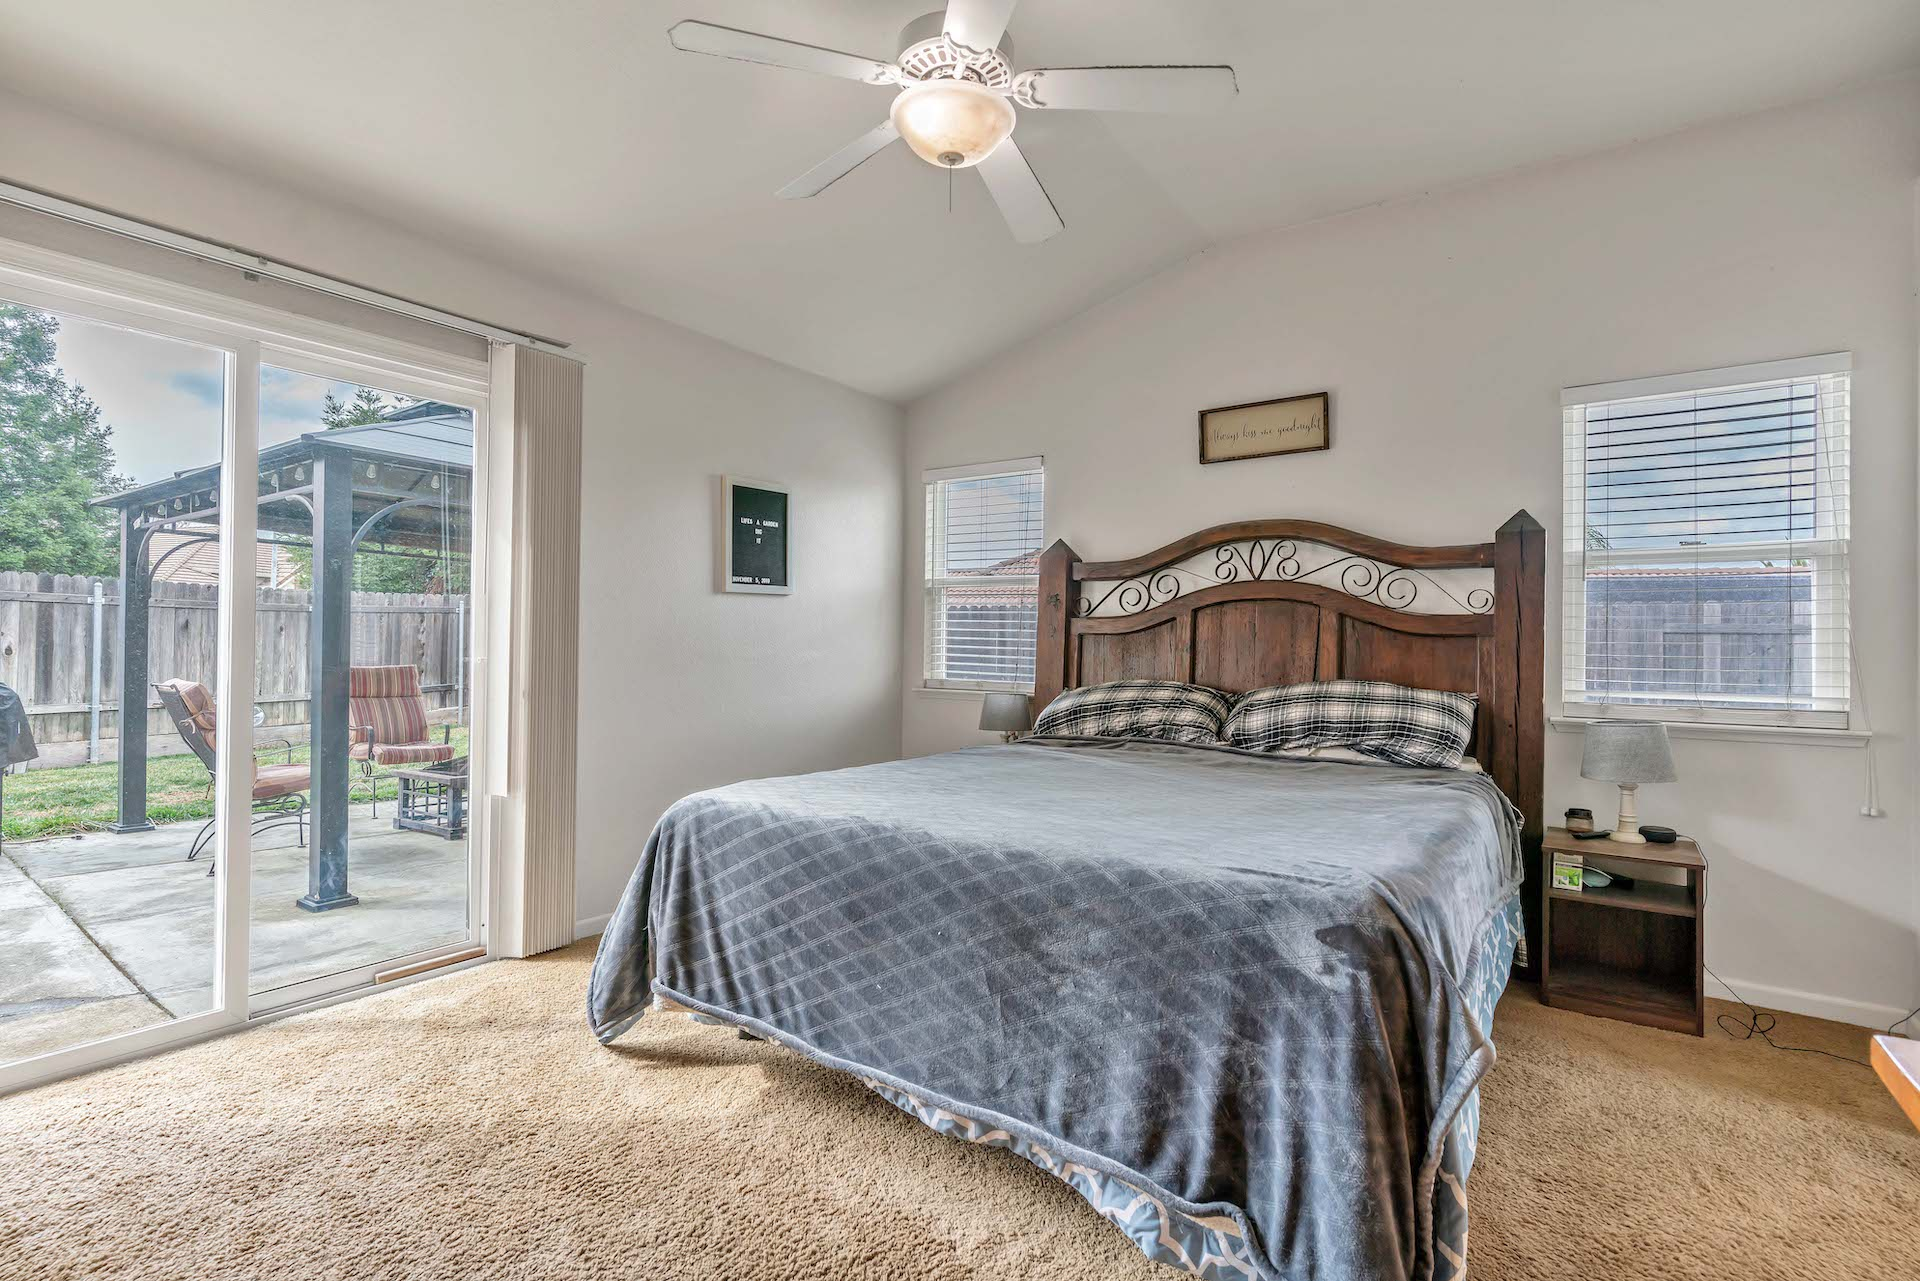 157 Clydesdale Way, Roseville, Ca | Master Bedroom | Roseville Real Estate Agent